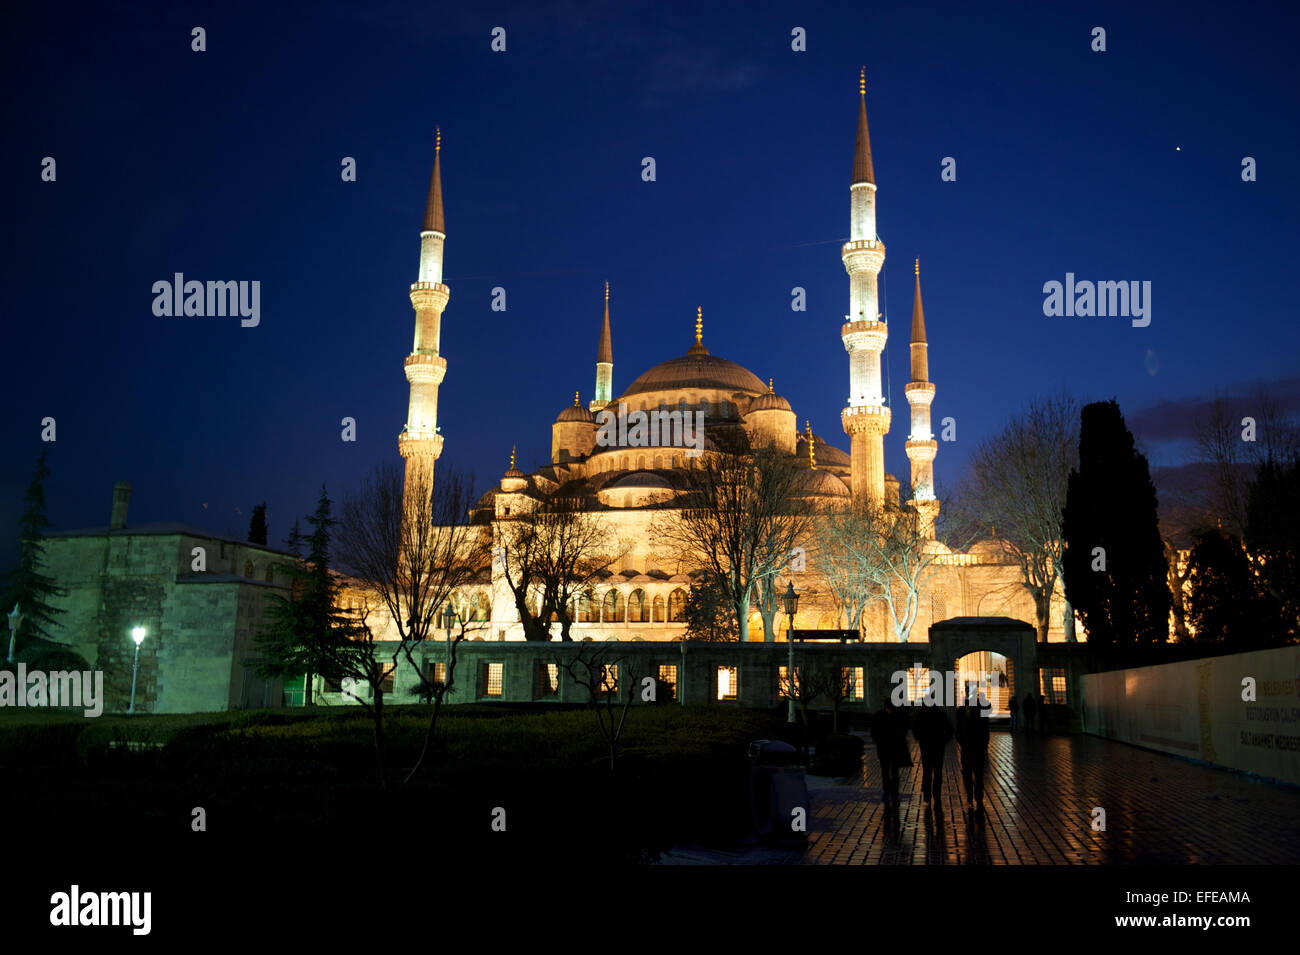 The Blue Mosque is seen at night as part of a photo essay on winter breaks in Istanbul, Turkey. - Stock Image